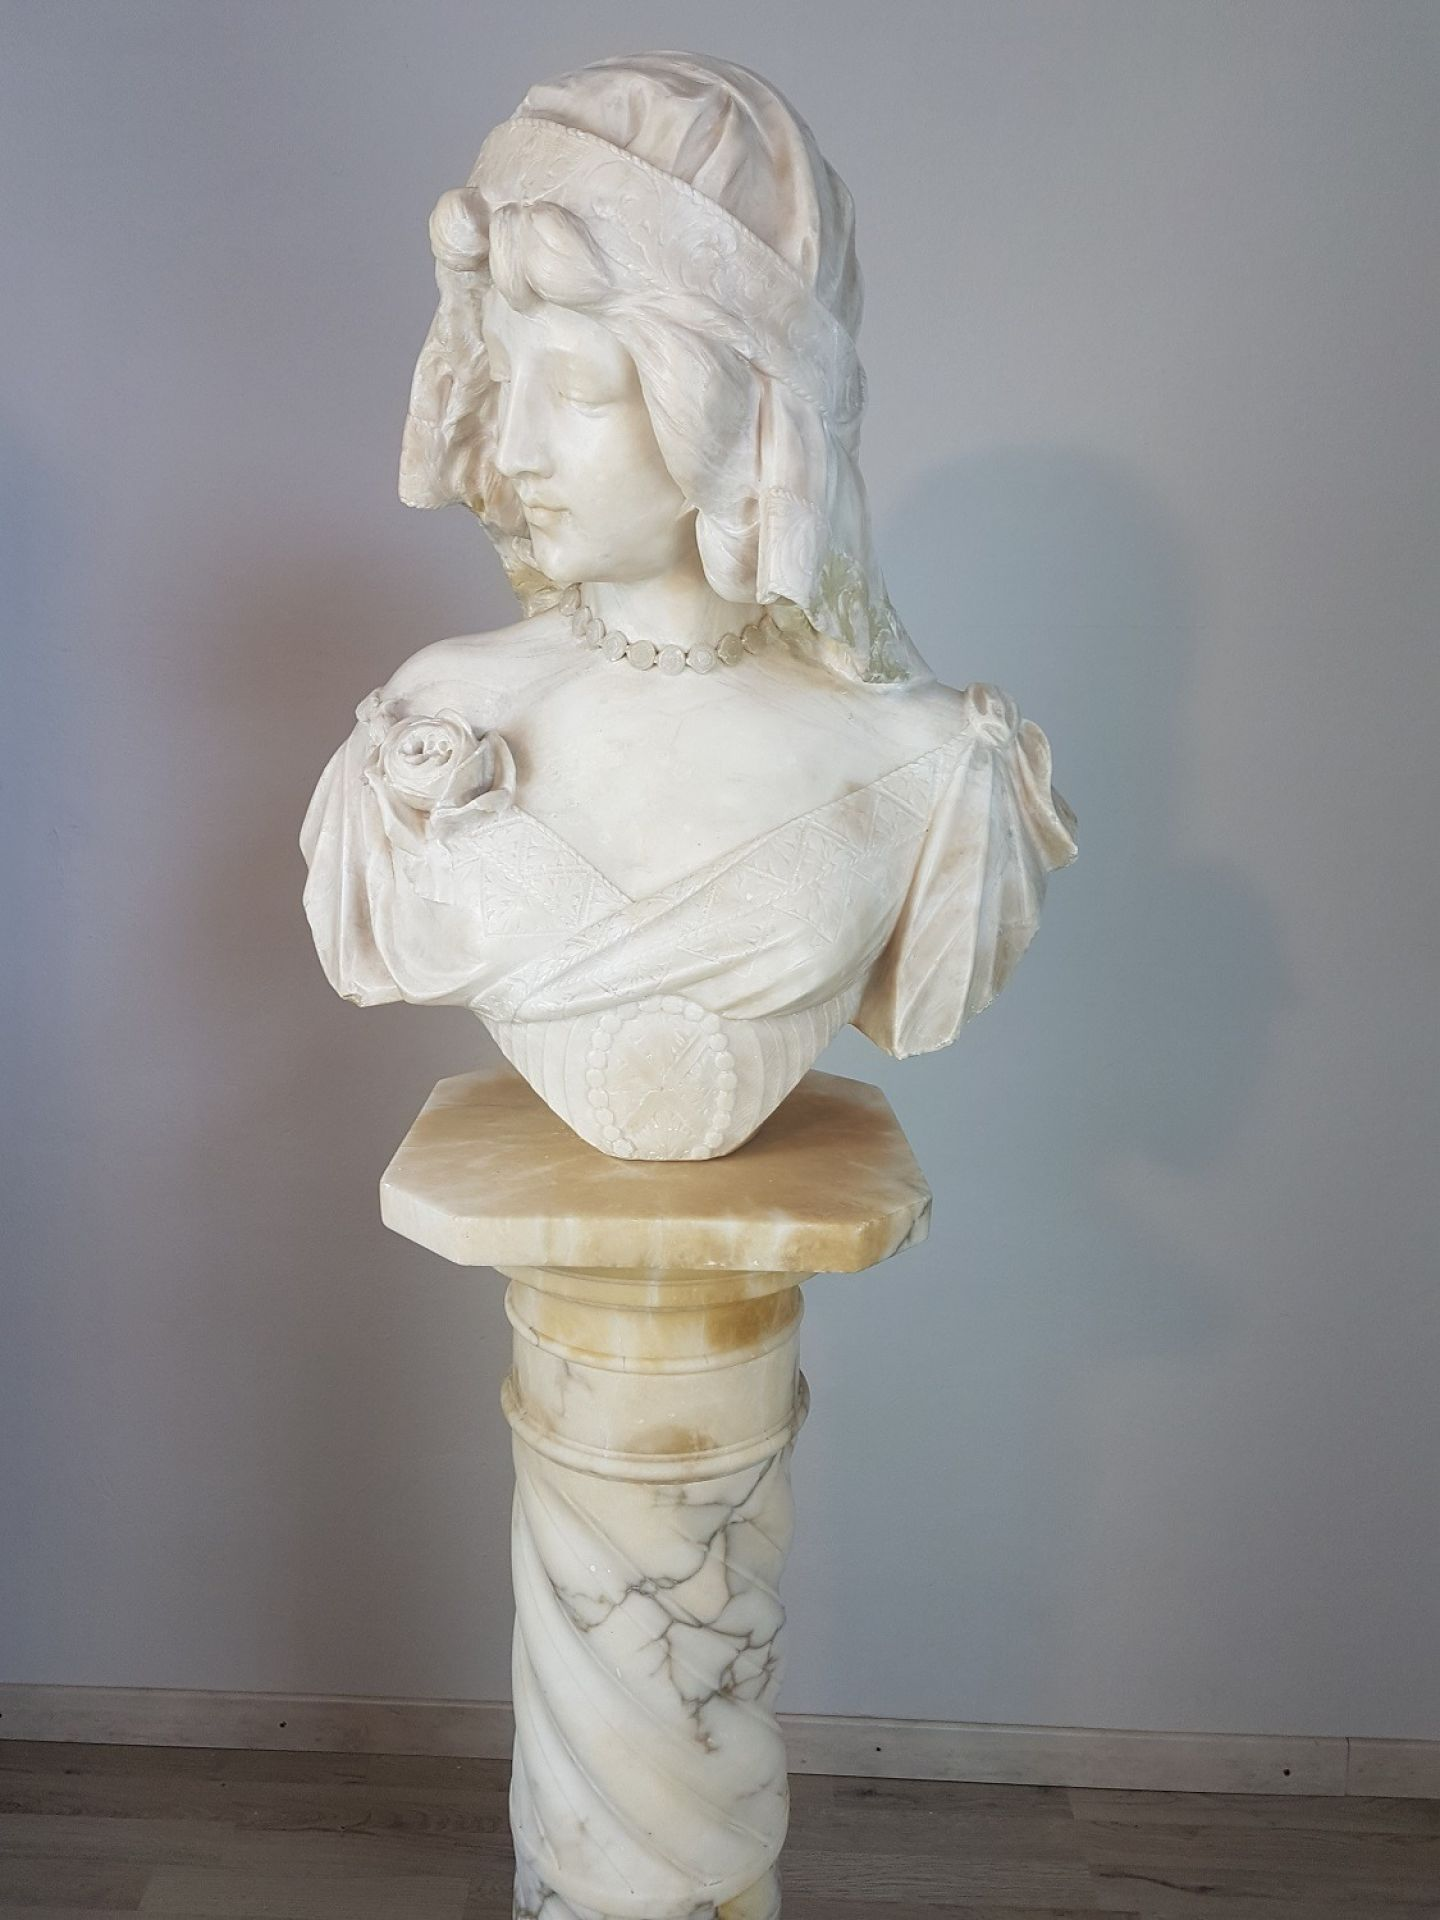 19th Century Italian A. Cipriani Carrara Marble Bust of a Young Woman Sculpture